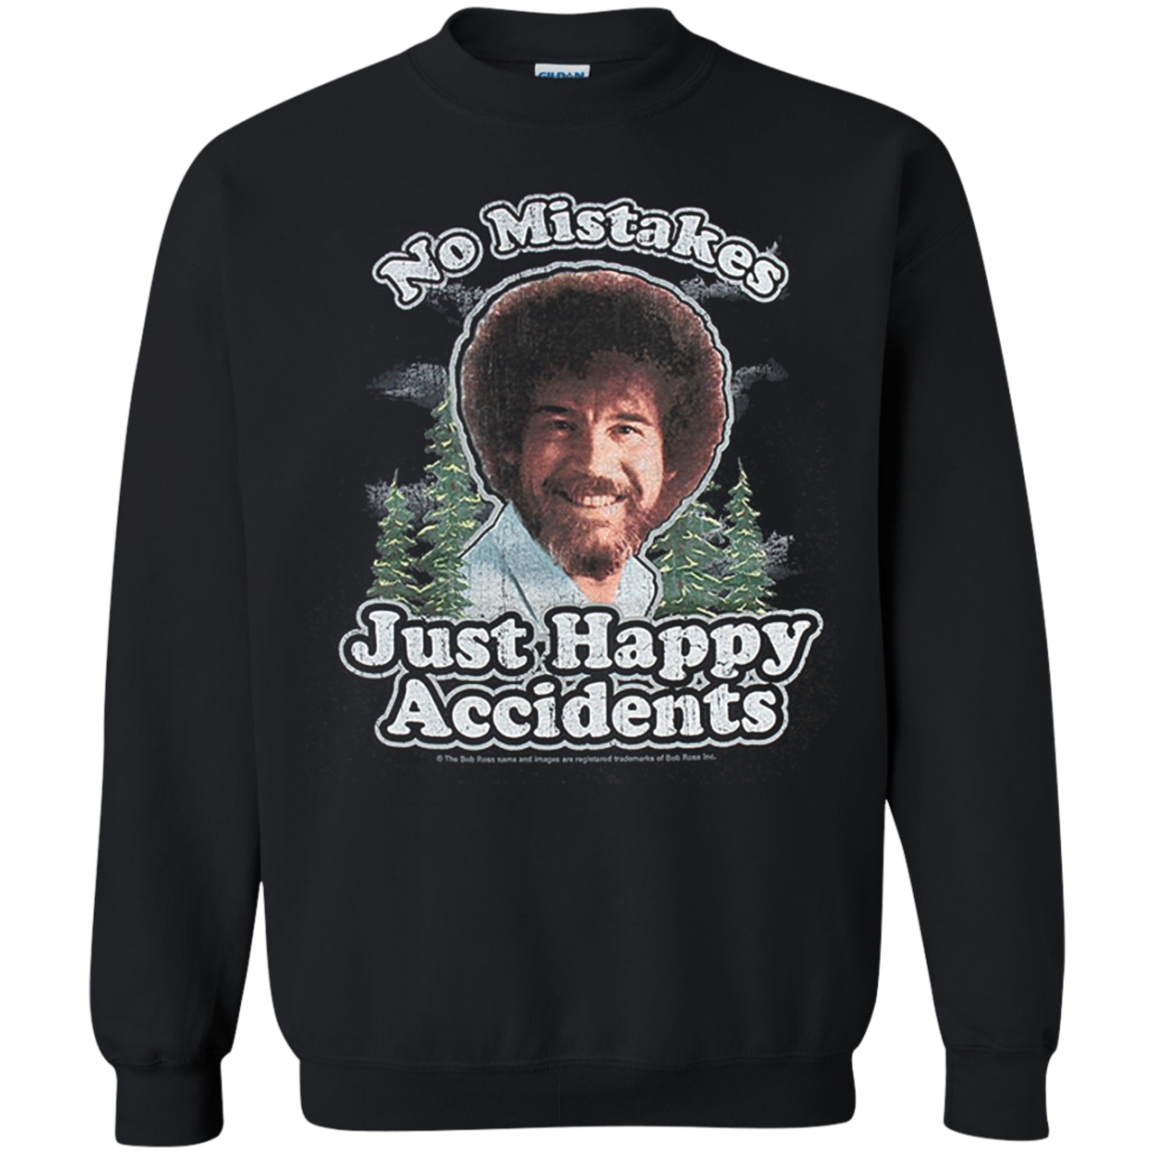 No Mistakes Just Happy Accidents Bob Ross T Shirt Hoodie Sweater Sweatshirts Bob Ross T Shirt Bob Ross